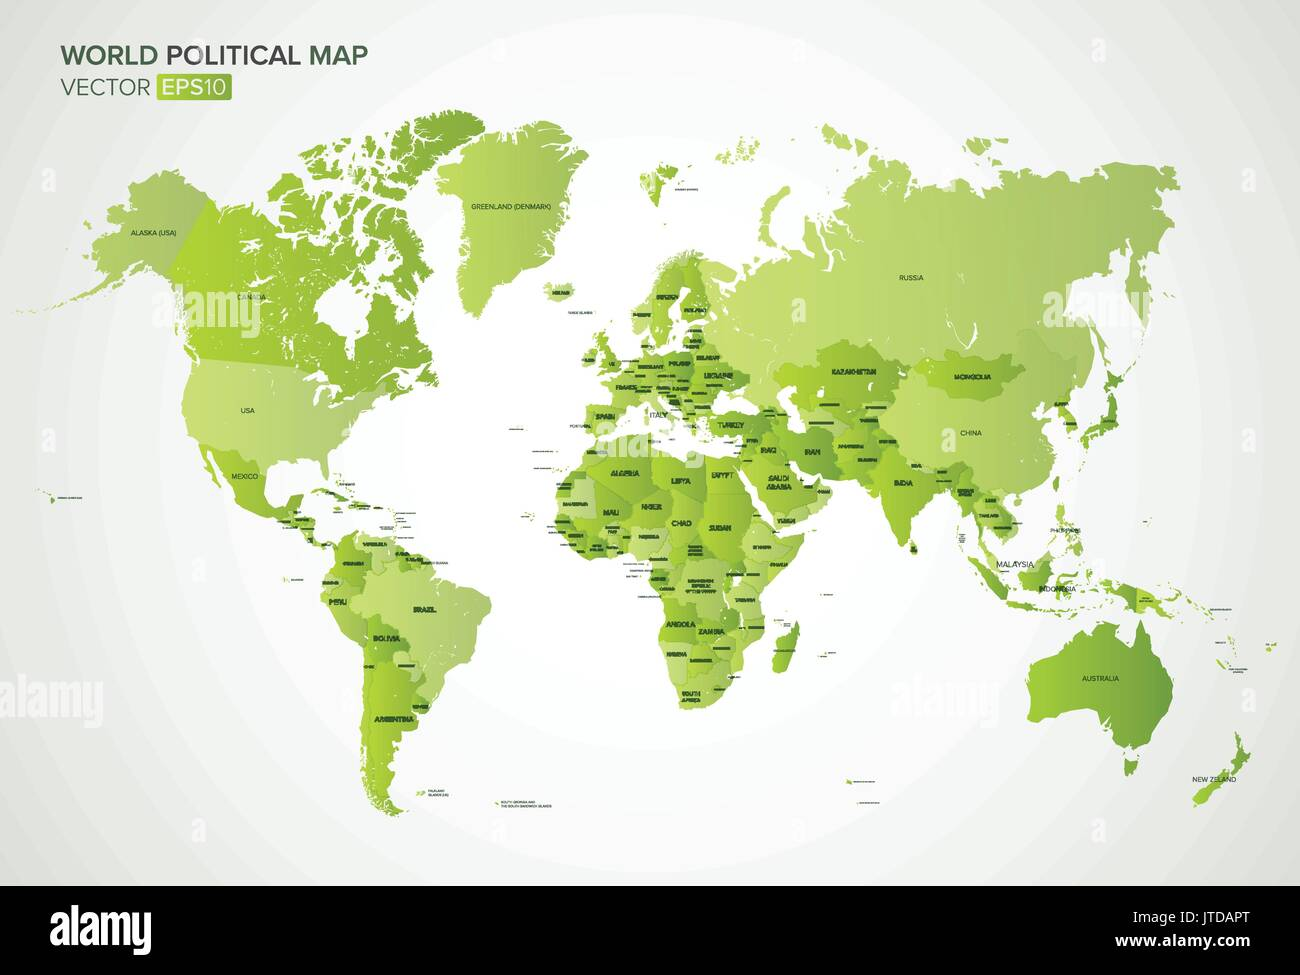 Vector political map with the names of